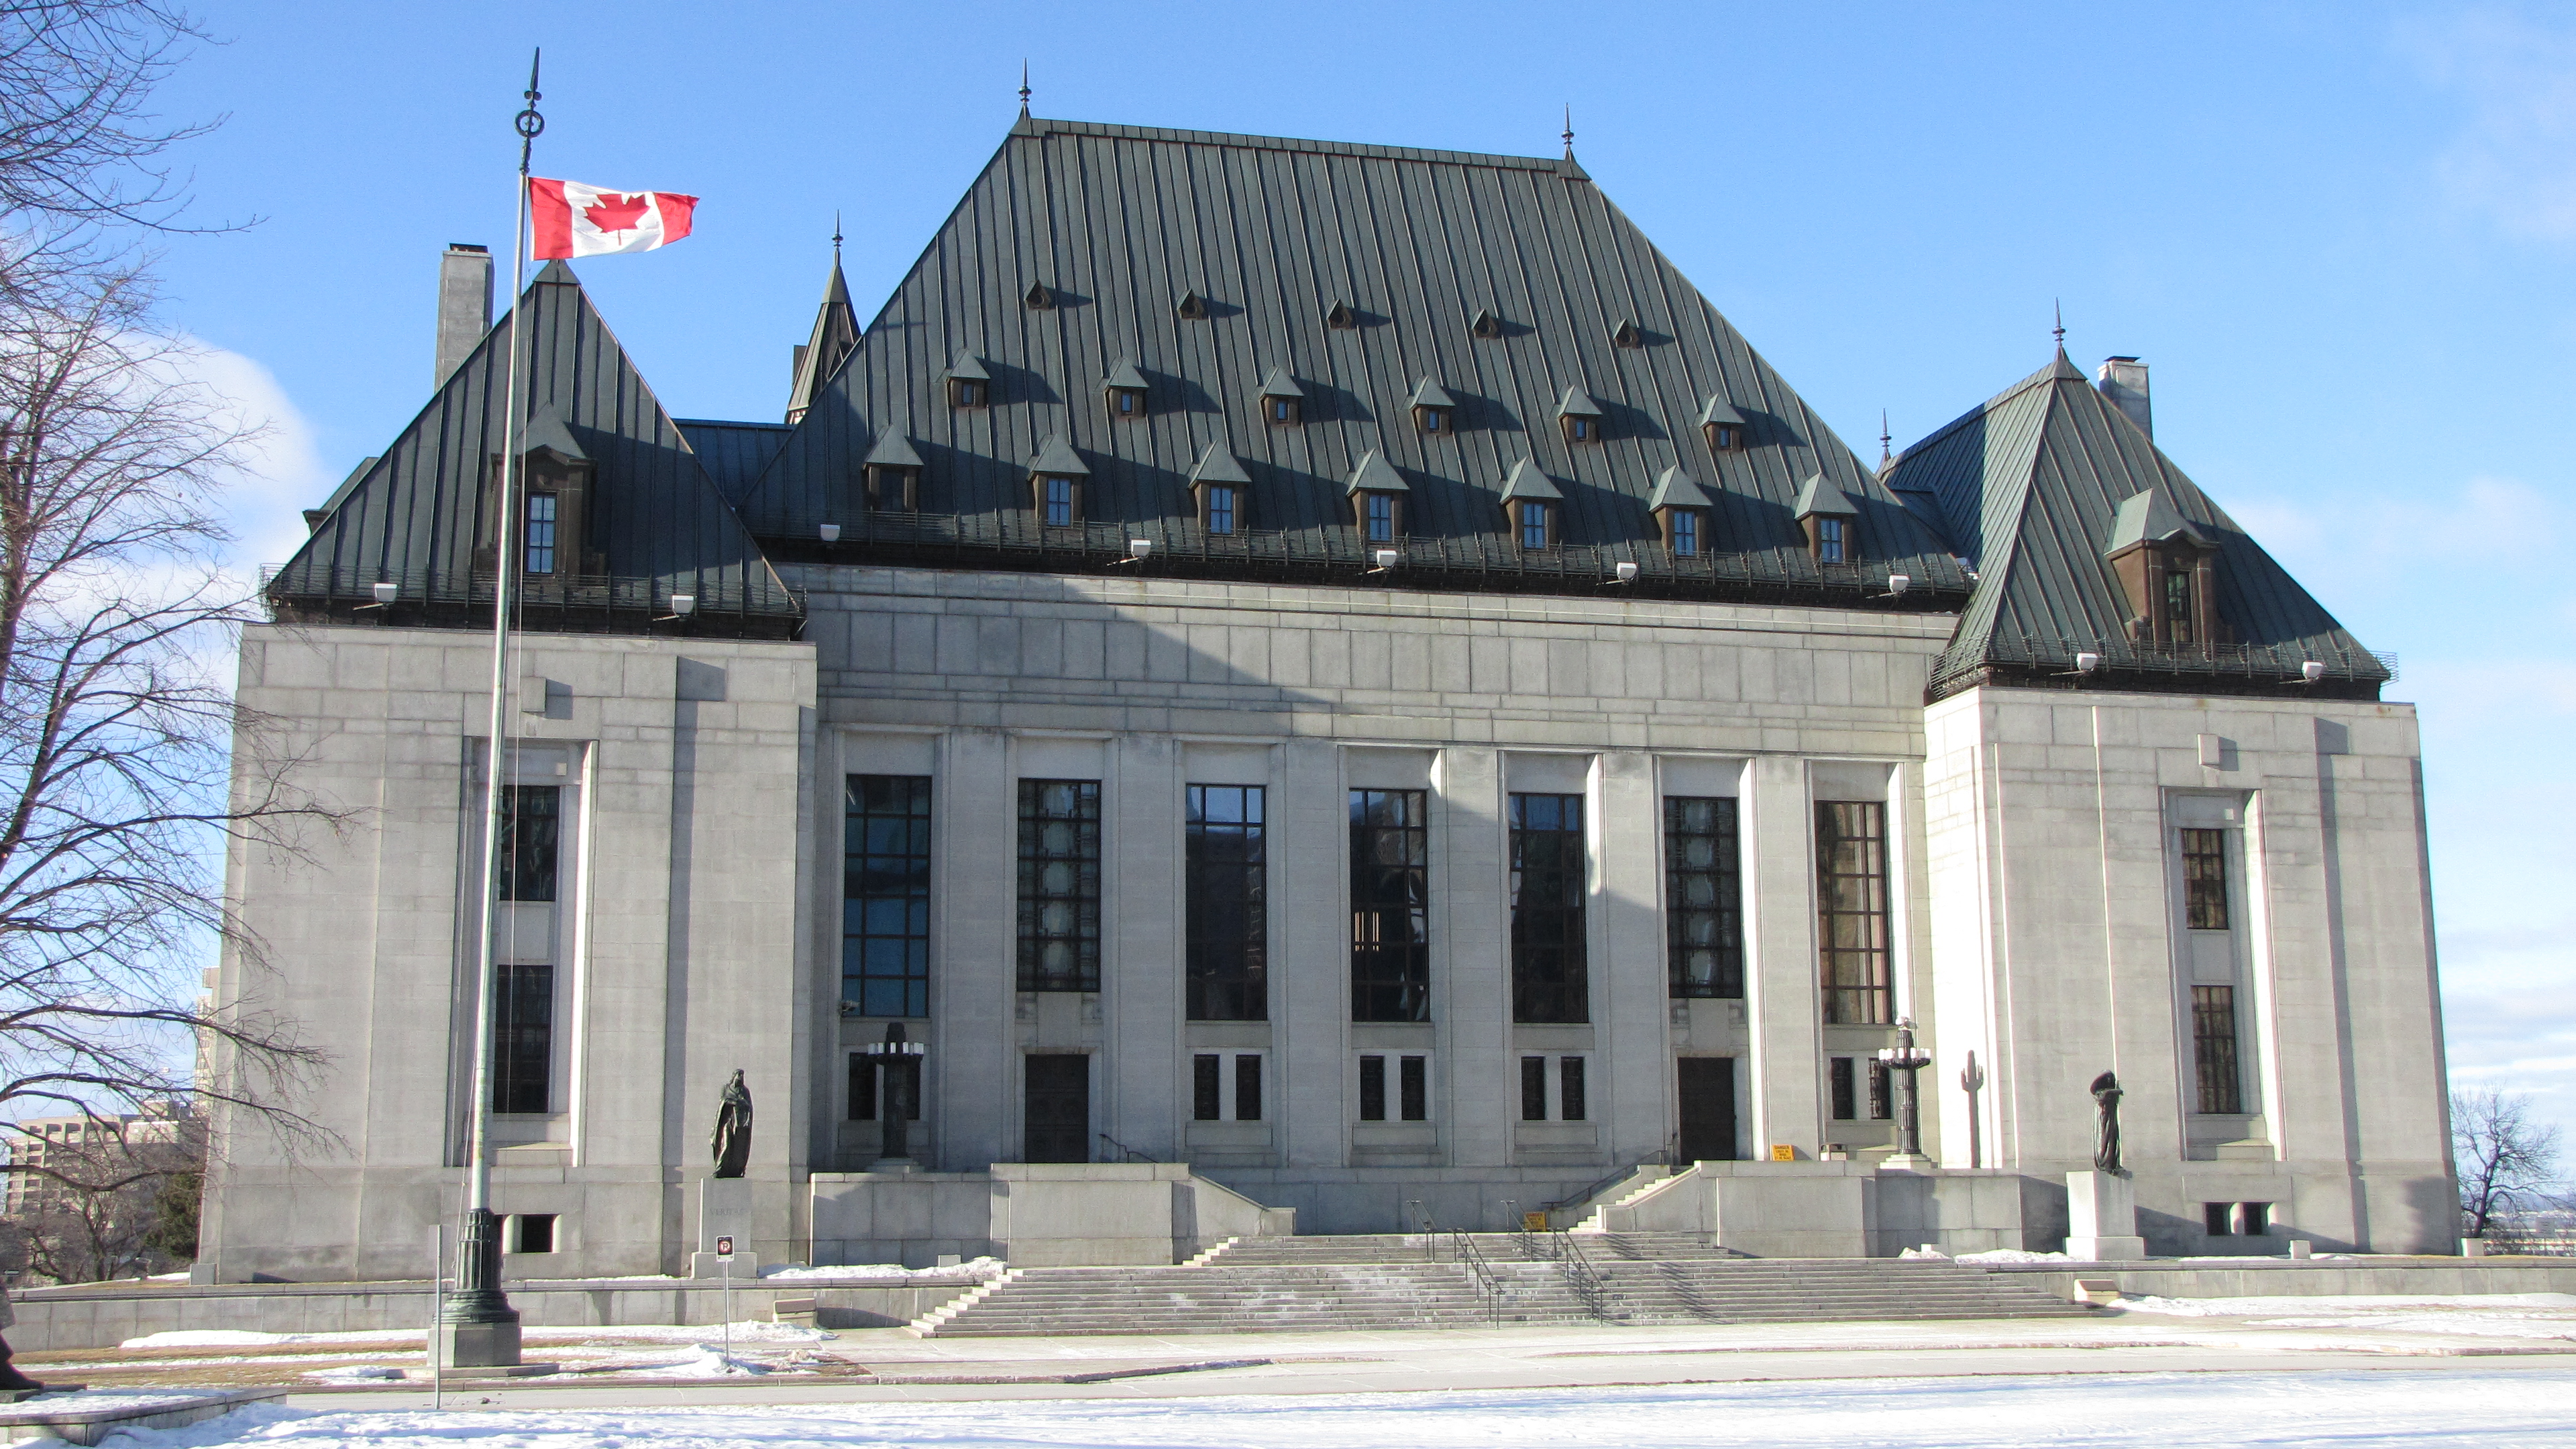 The Supreme Court of Canada building in Ottawa on Feburary 7, 2010. (Photo by D. Gordon E. Roberston via Wikipedia)